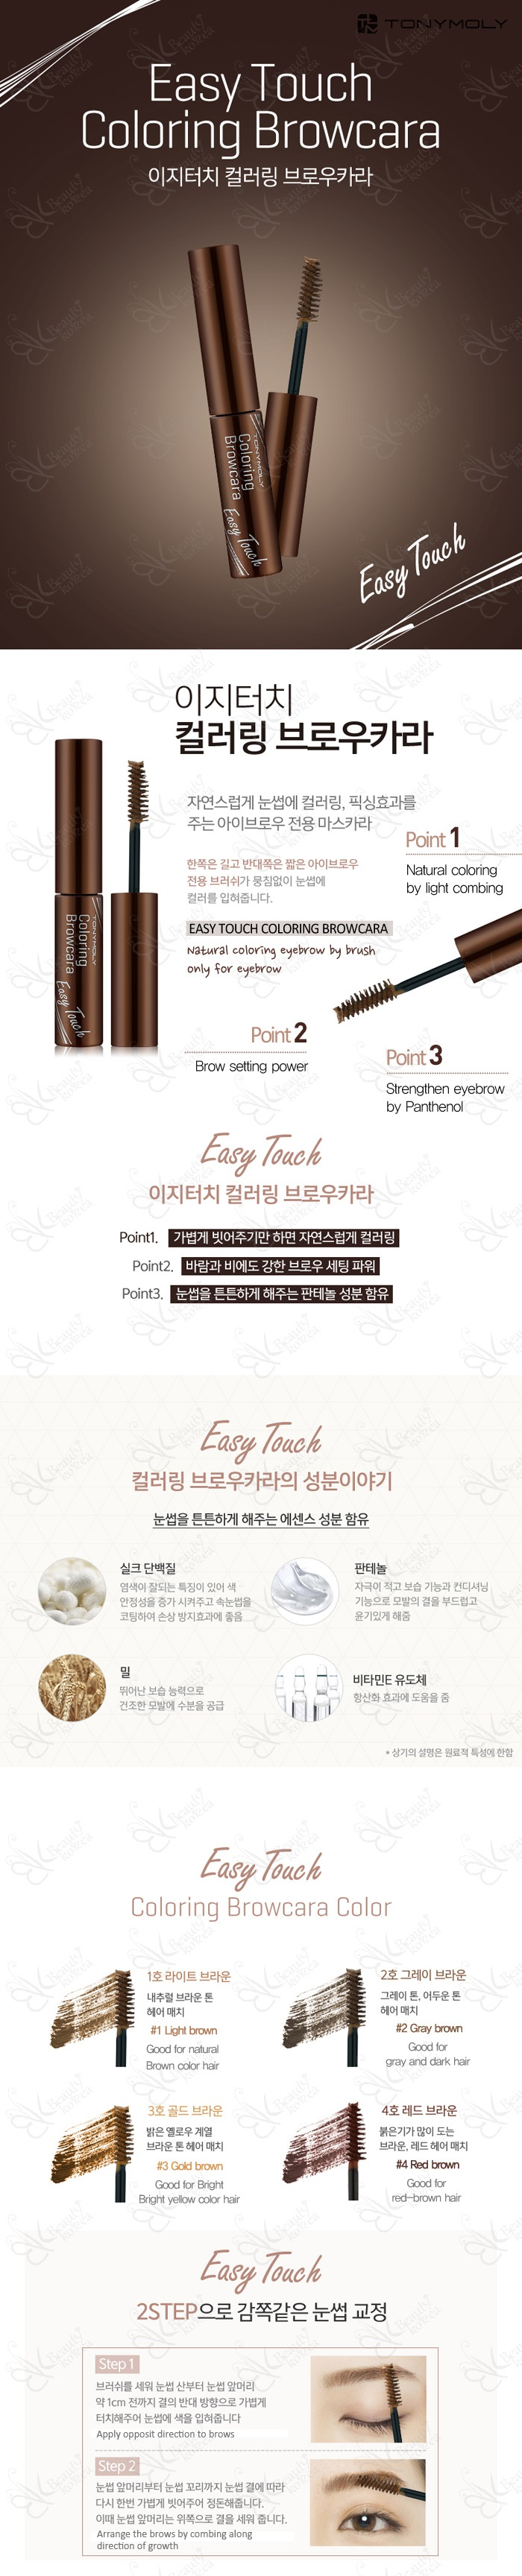 Tony Moly Easy Touch Coloring Browcara (4 Colors)